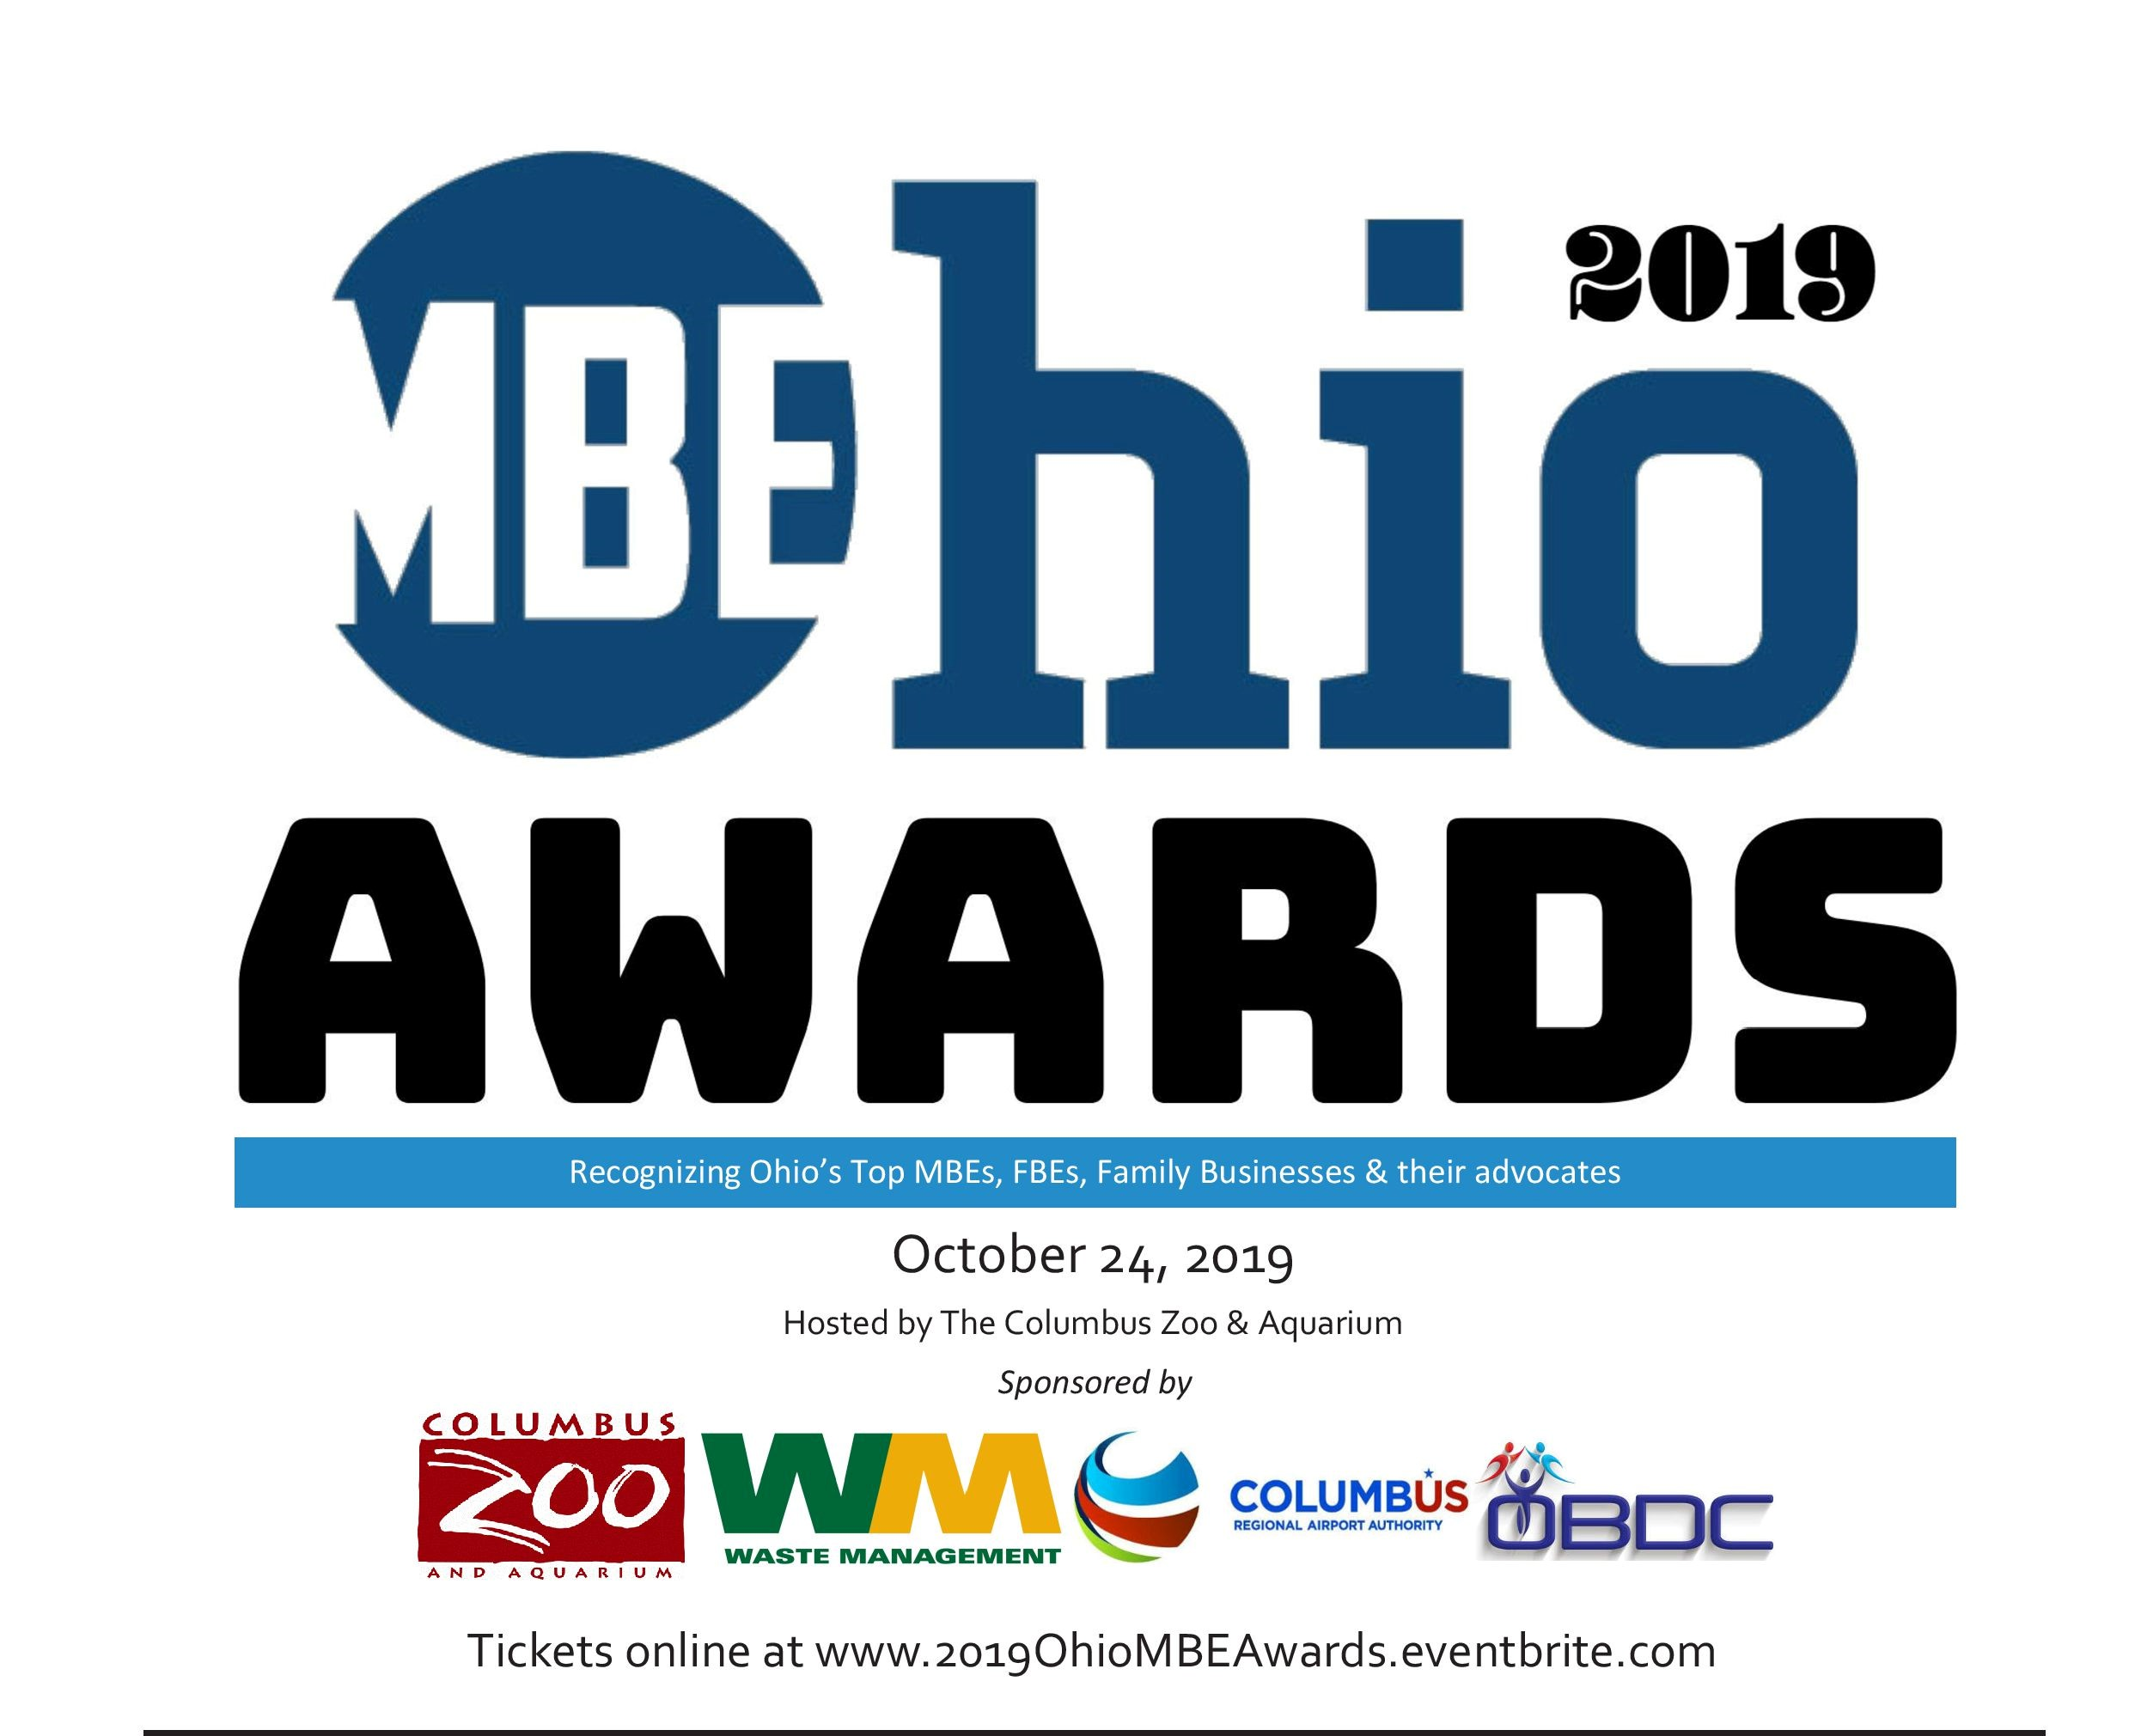 Get your Ticket to the OhioMBE Awards!